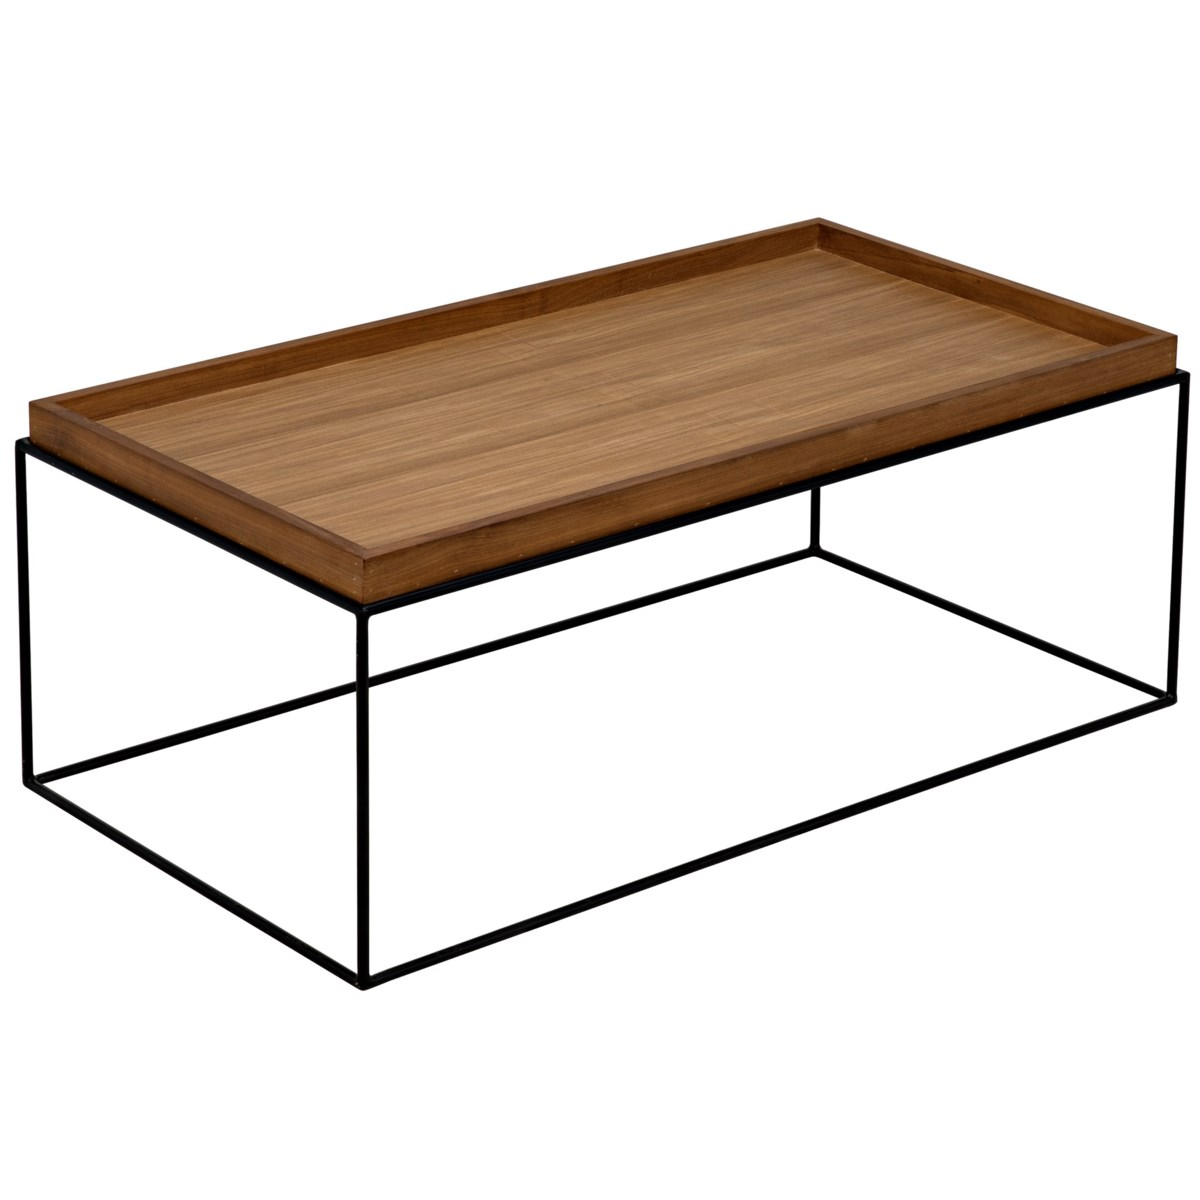 SL01 Coffee Table, Steel Base with Gold Teak Top